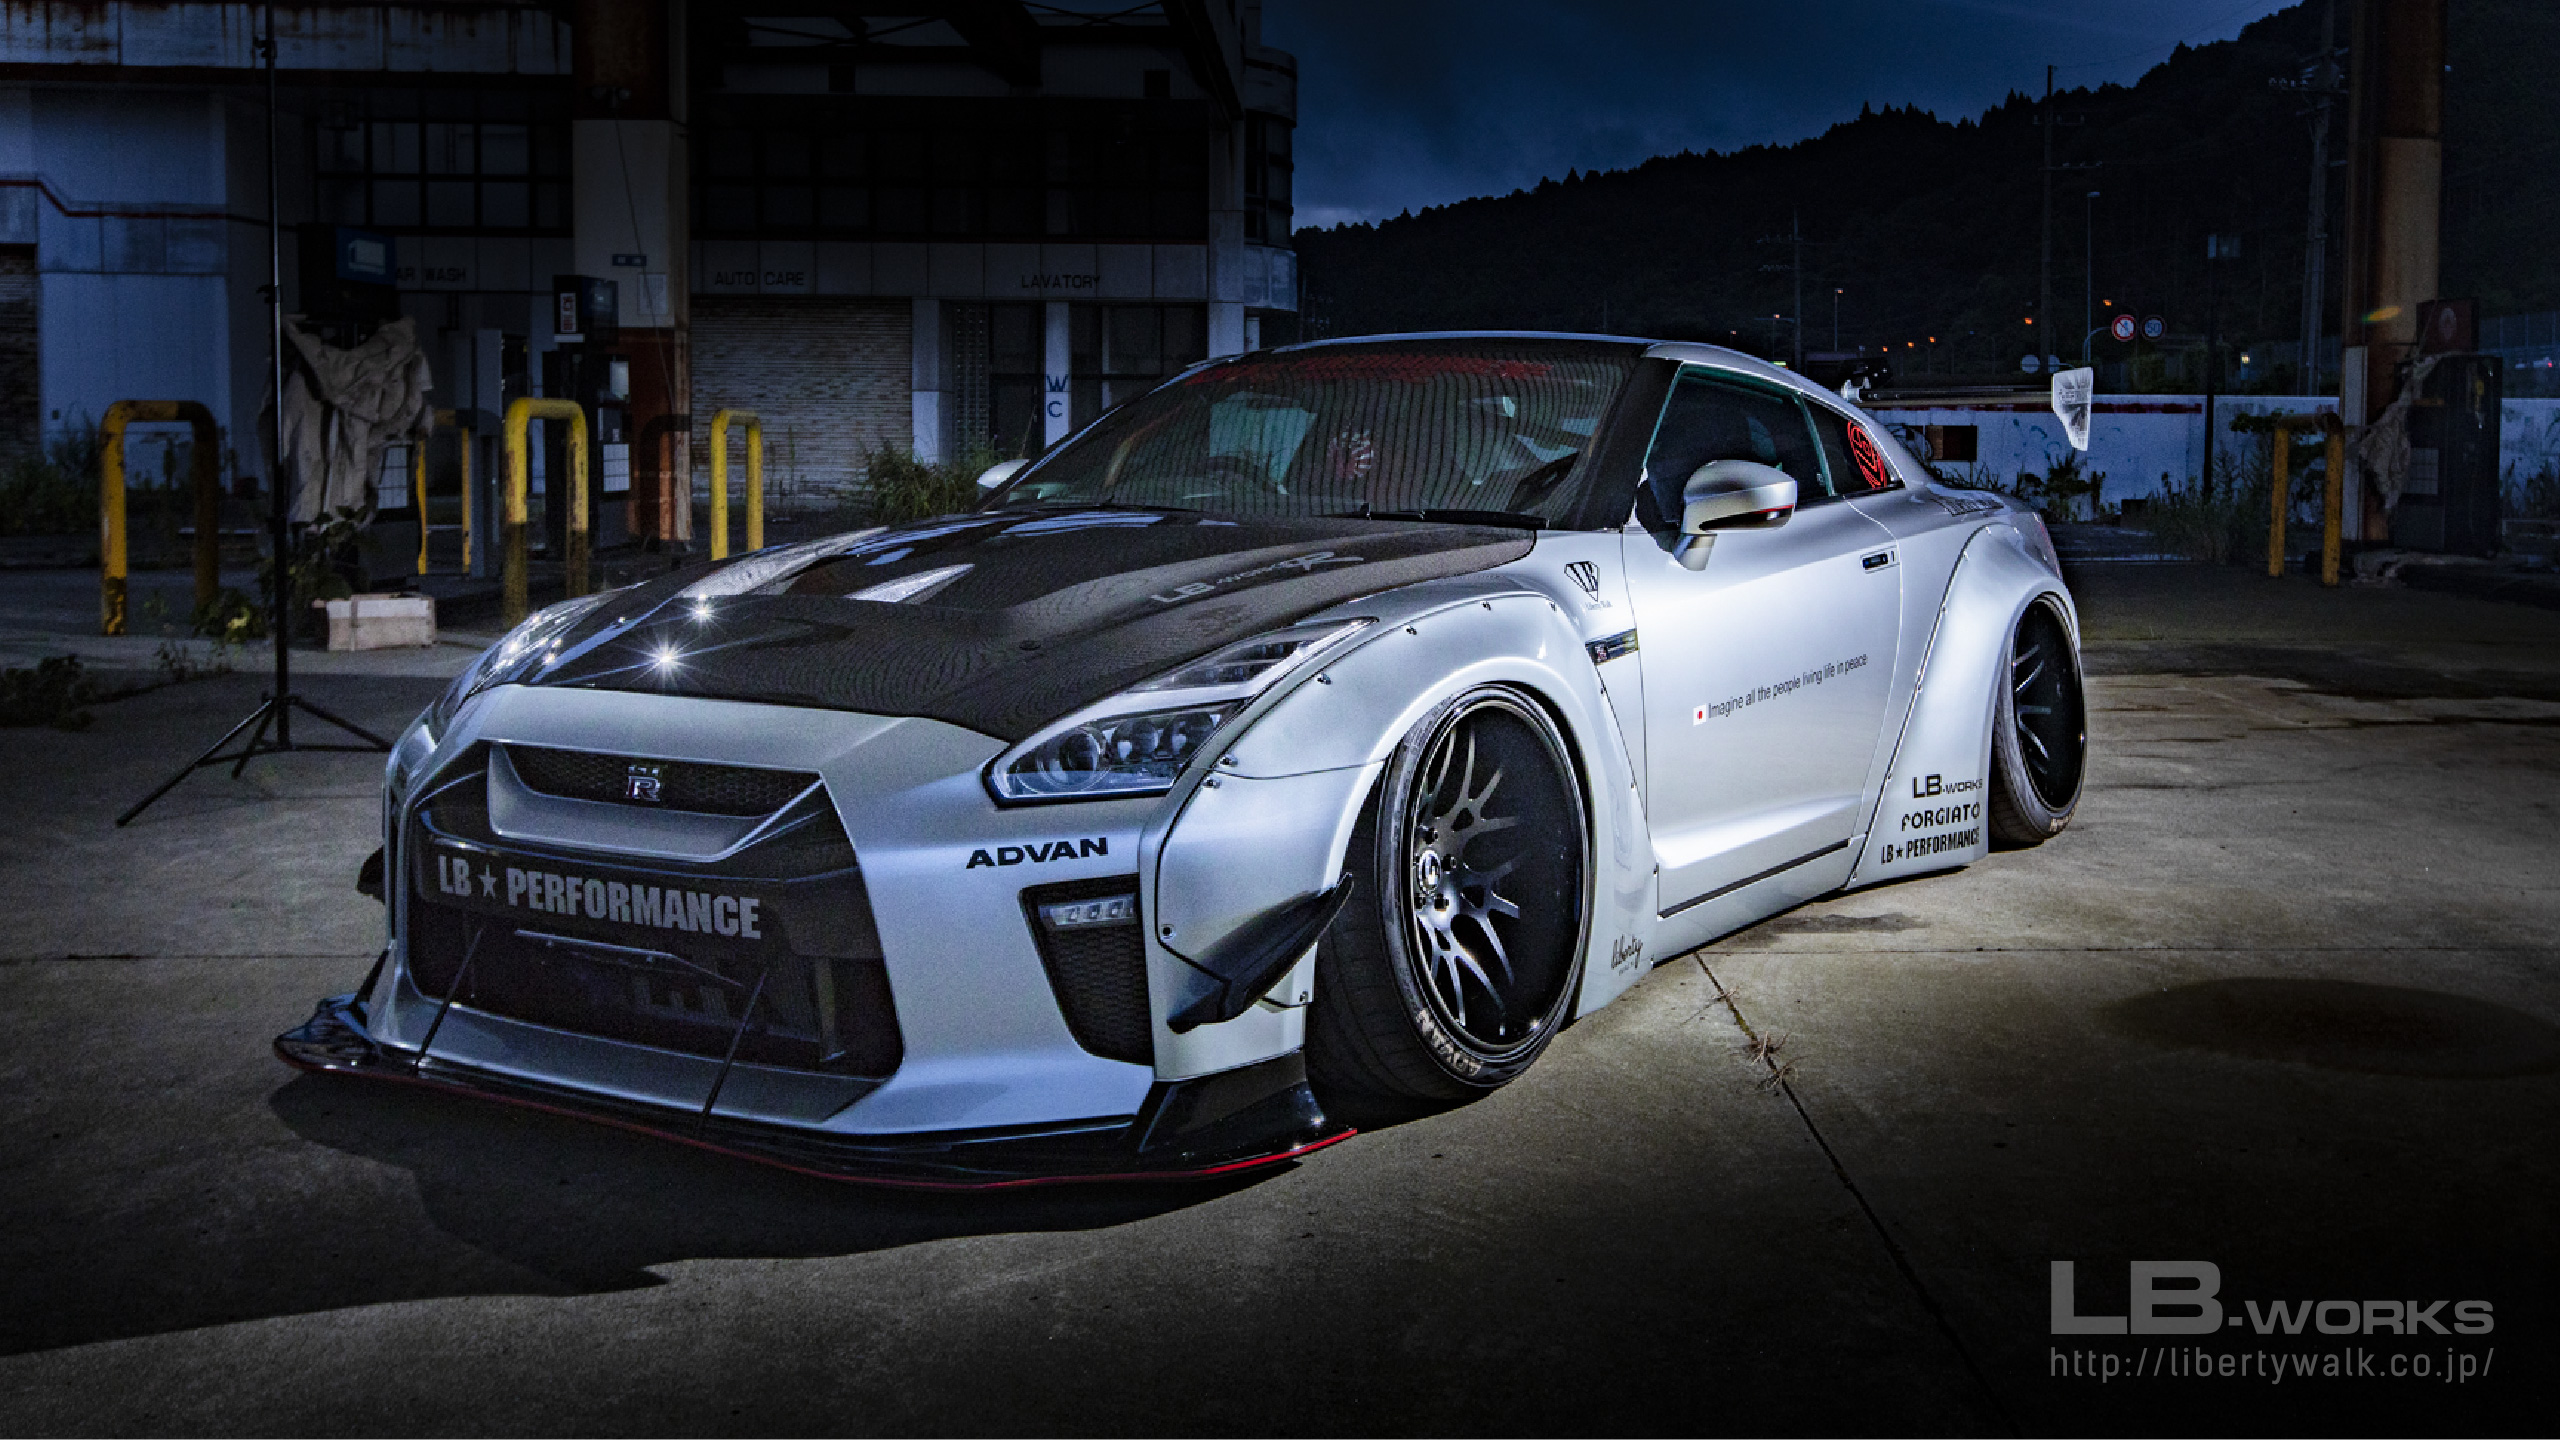 14-80 LB-WORKS NISSAN GT-R R35 type 1.5